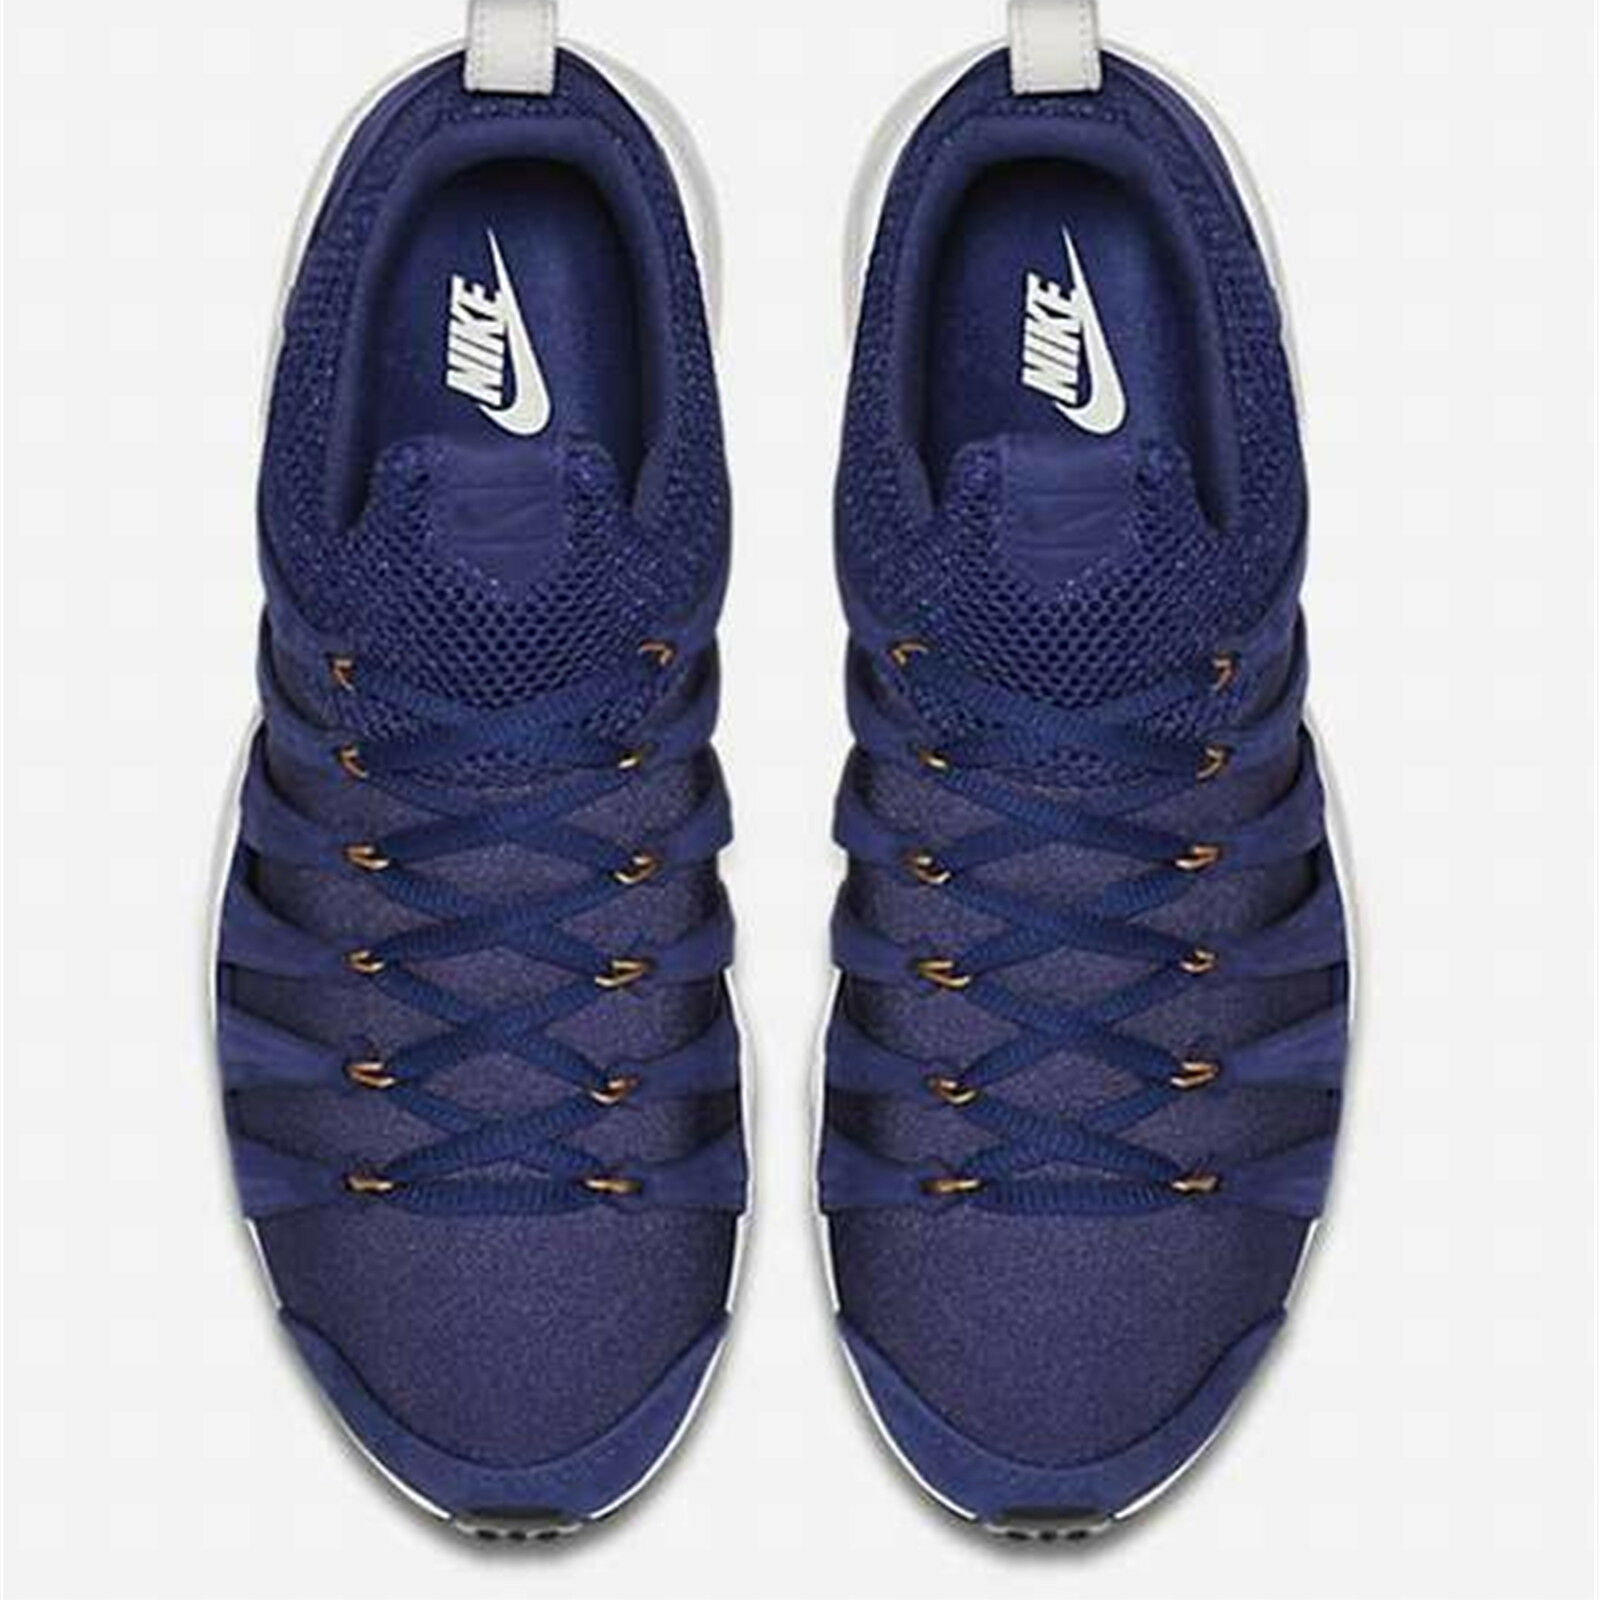 nike air 401) zoom spirimic hommes (881983 401) air les baskets de chaussures, de l'oen, le msrp: 200  . b2cd93